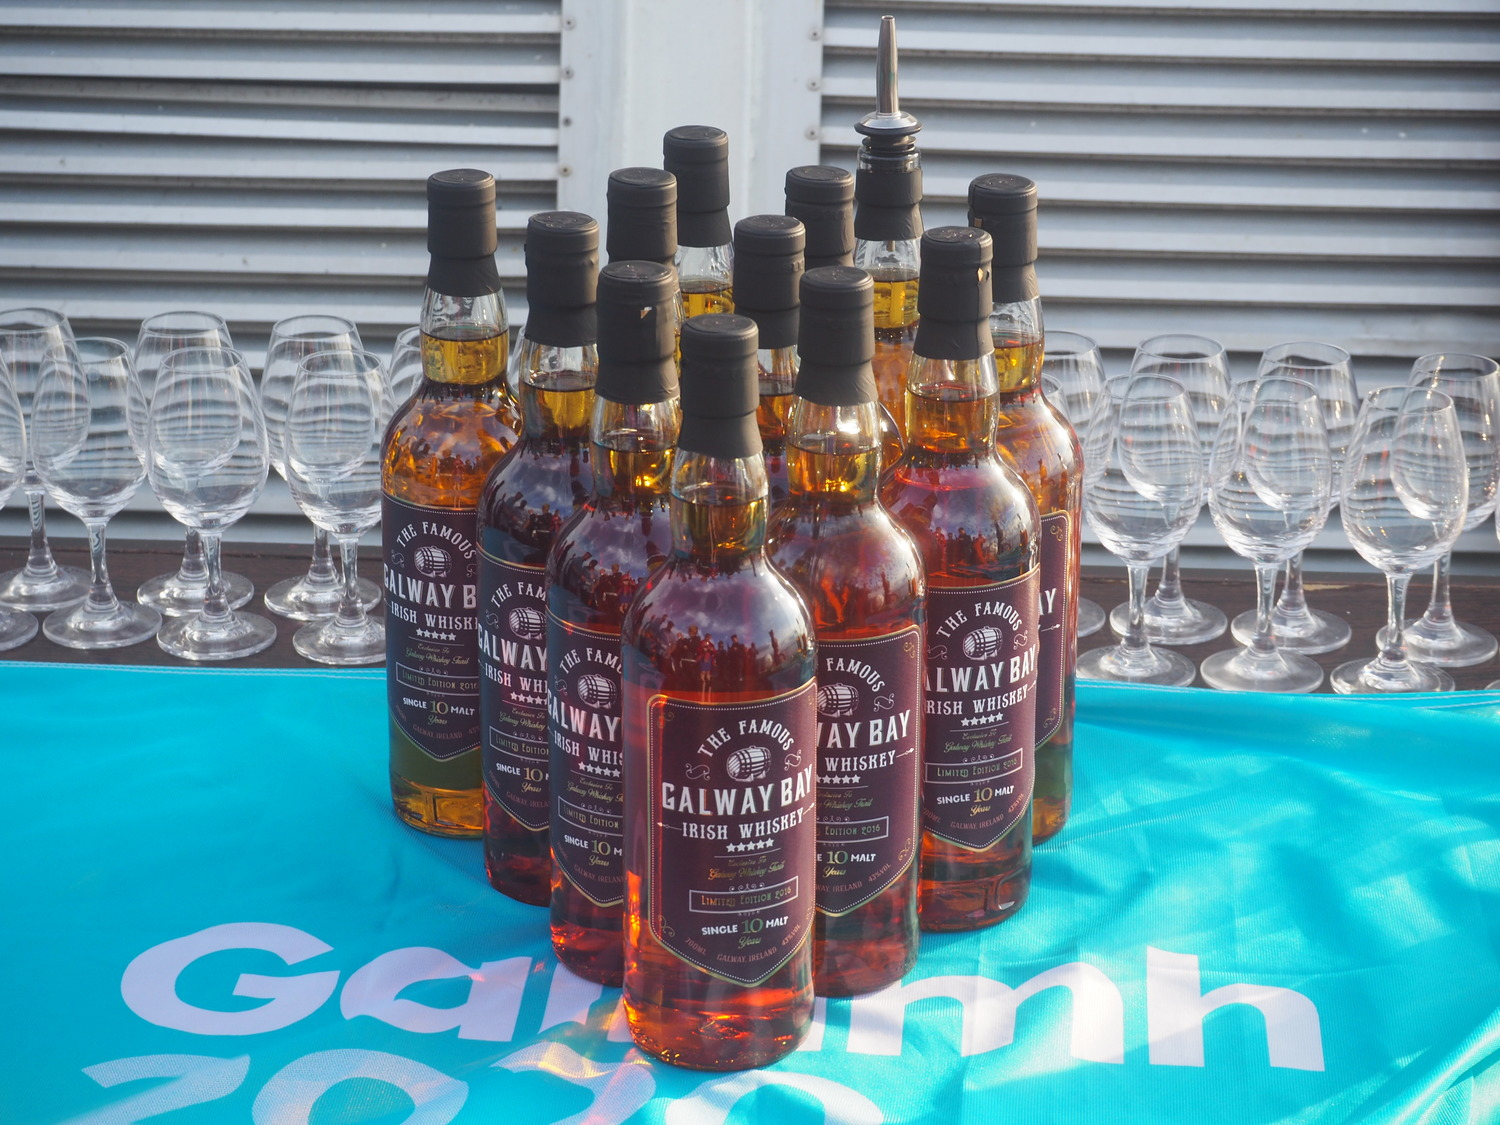 The Official Launch of The Famous Galway Bay Irish Whiskey